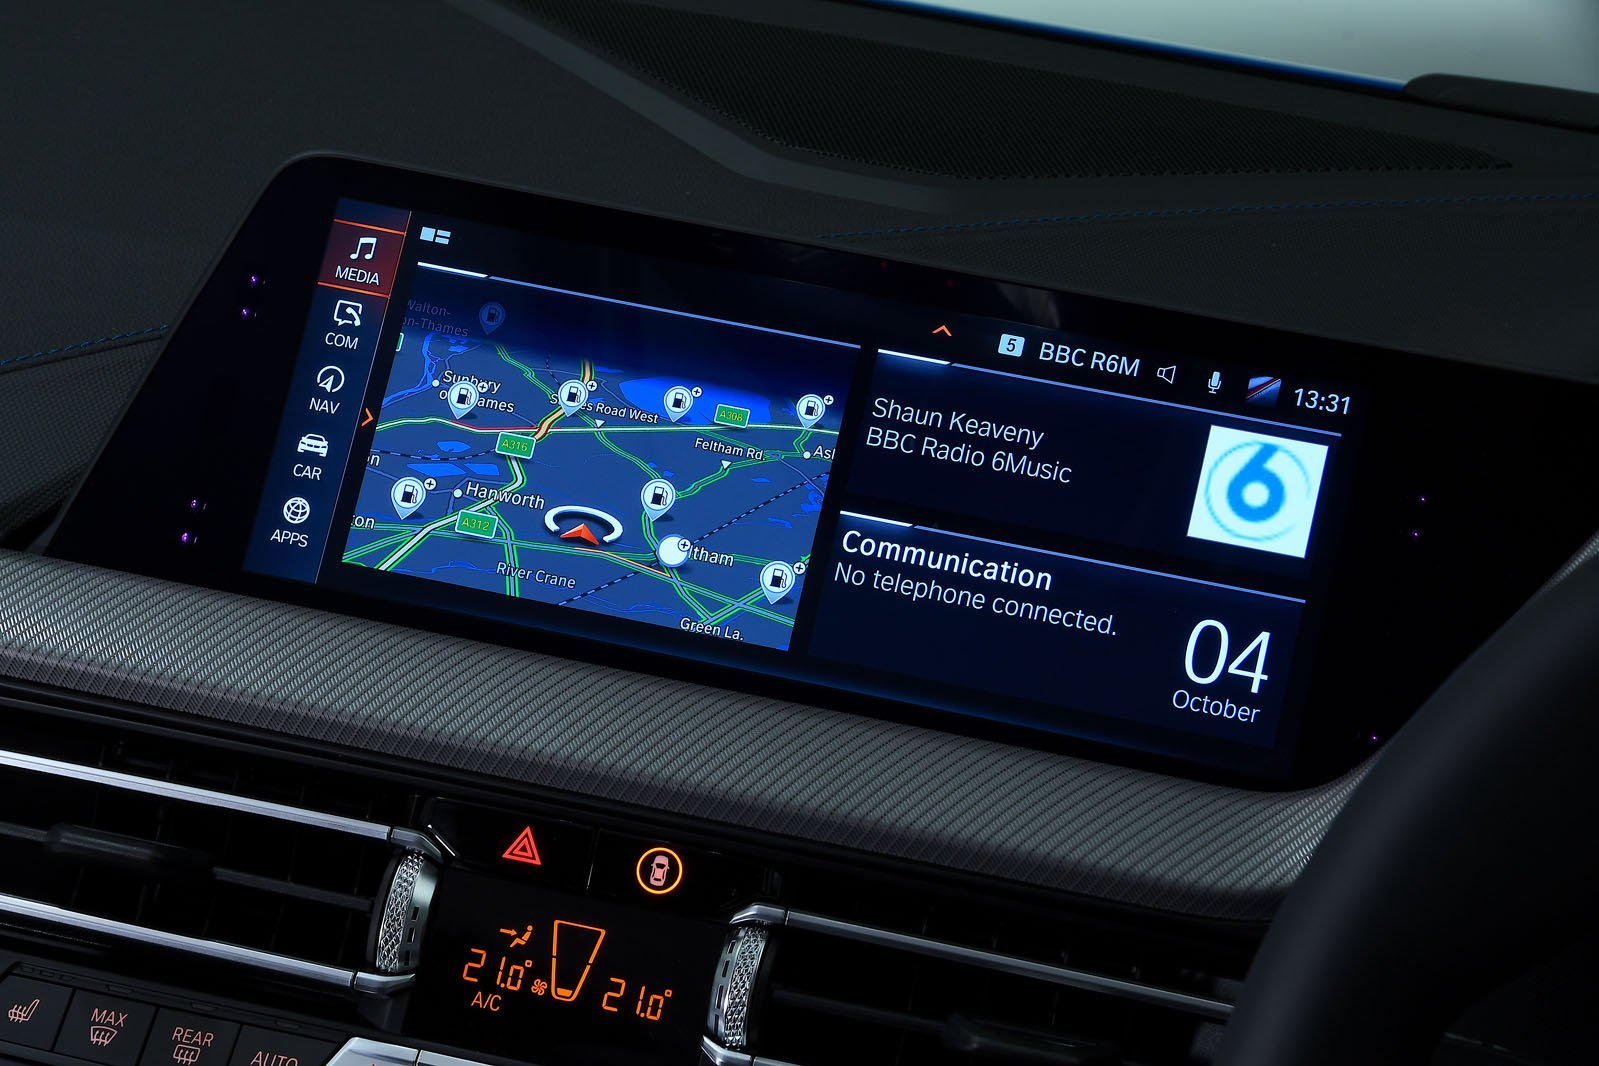 BMW 1 Series infotainment